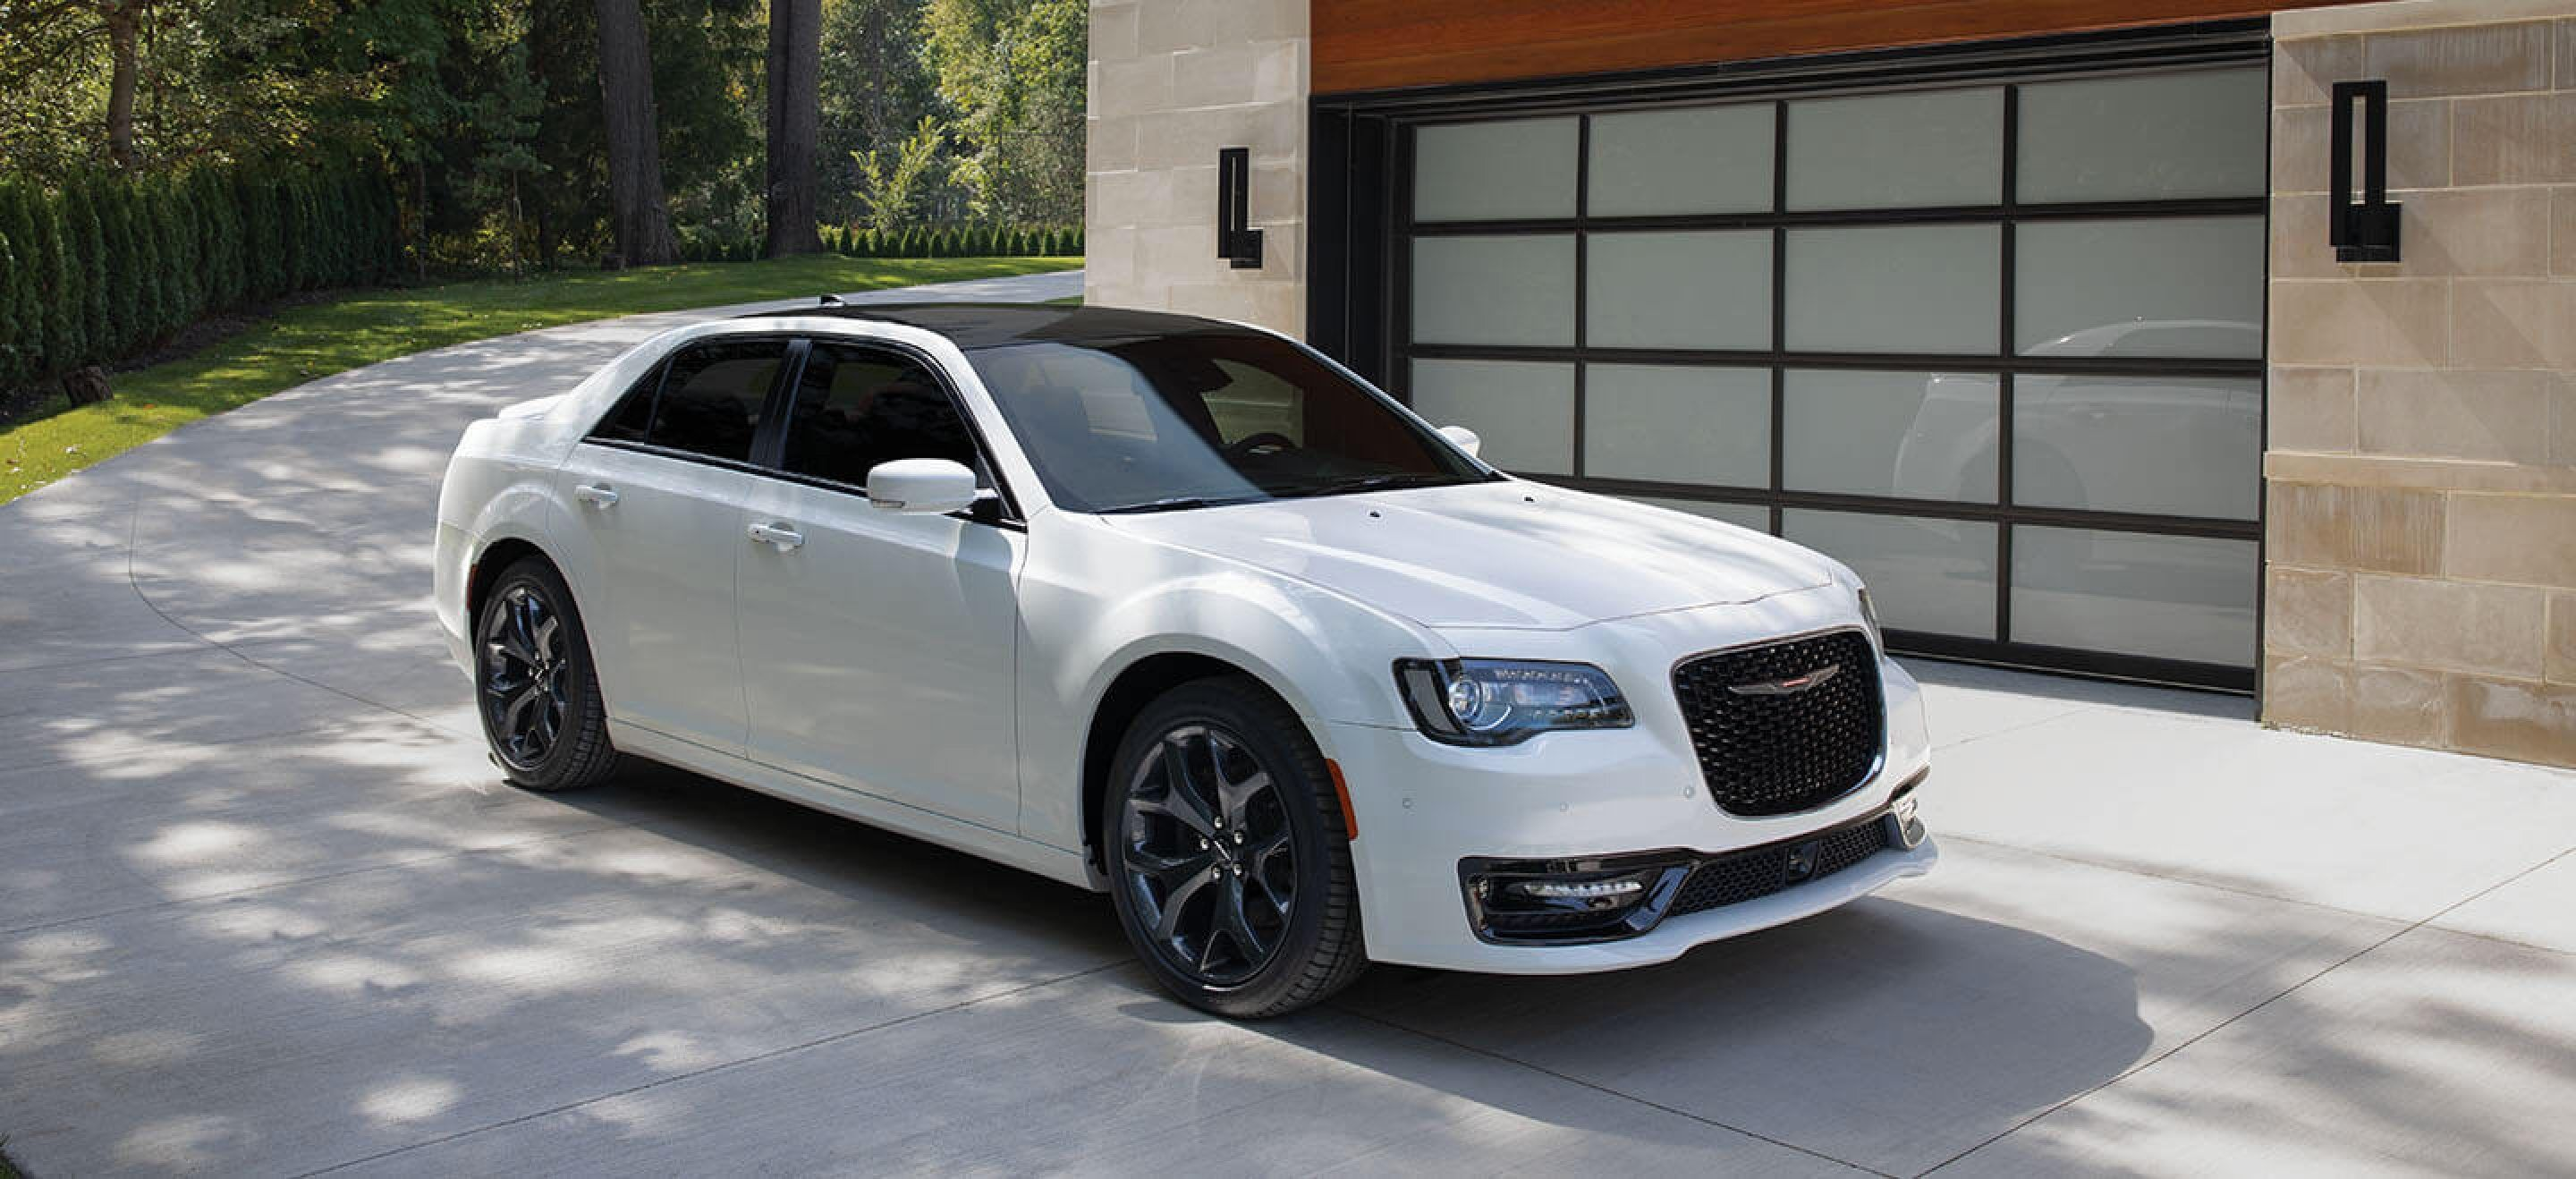 2021 Chrysler 300 Srt8 Concept and Review